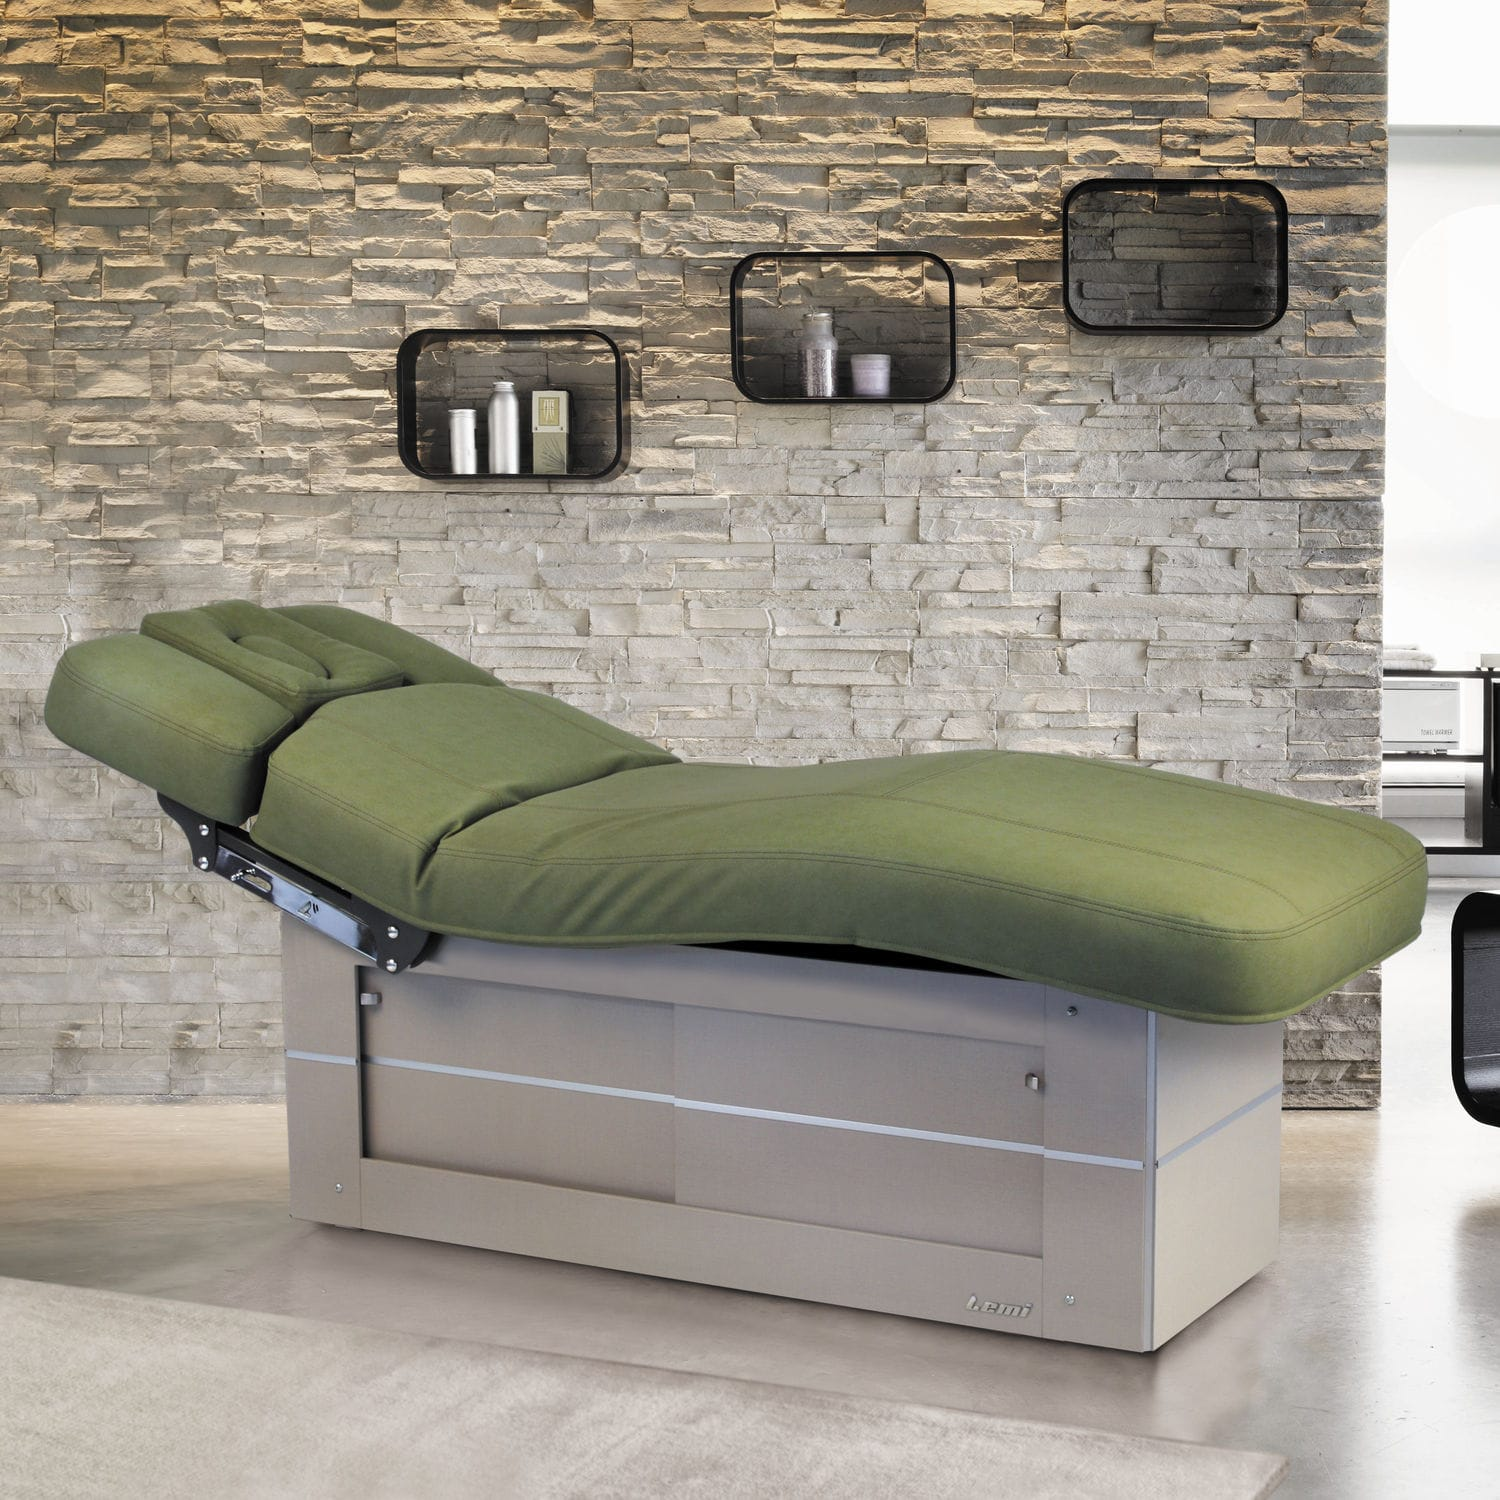 Futon Massage Electric Massage Table With Storage Compartment Wooden